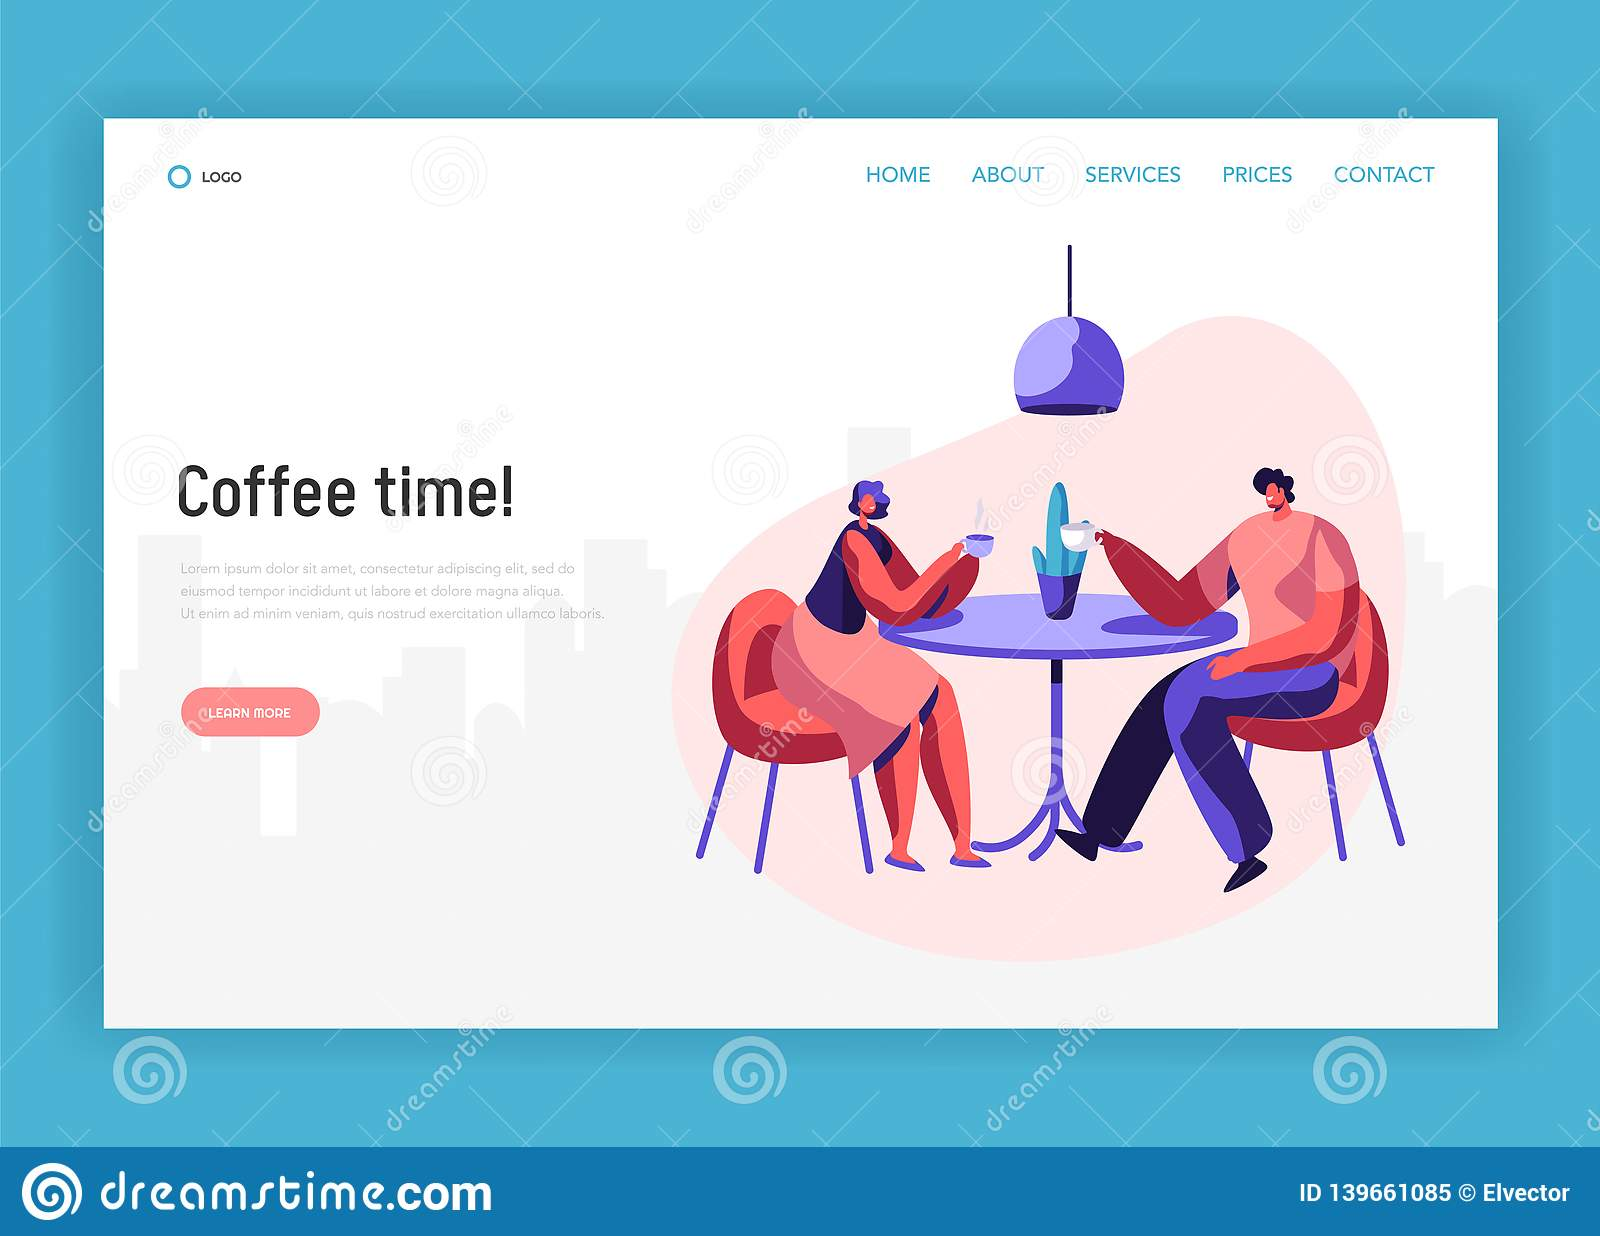 Lovers Couple or Pair Friend Sit at Table Drink Coffee have Discussion Landing Page. Smiling Man Woman Friendly Meeting